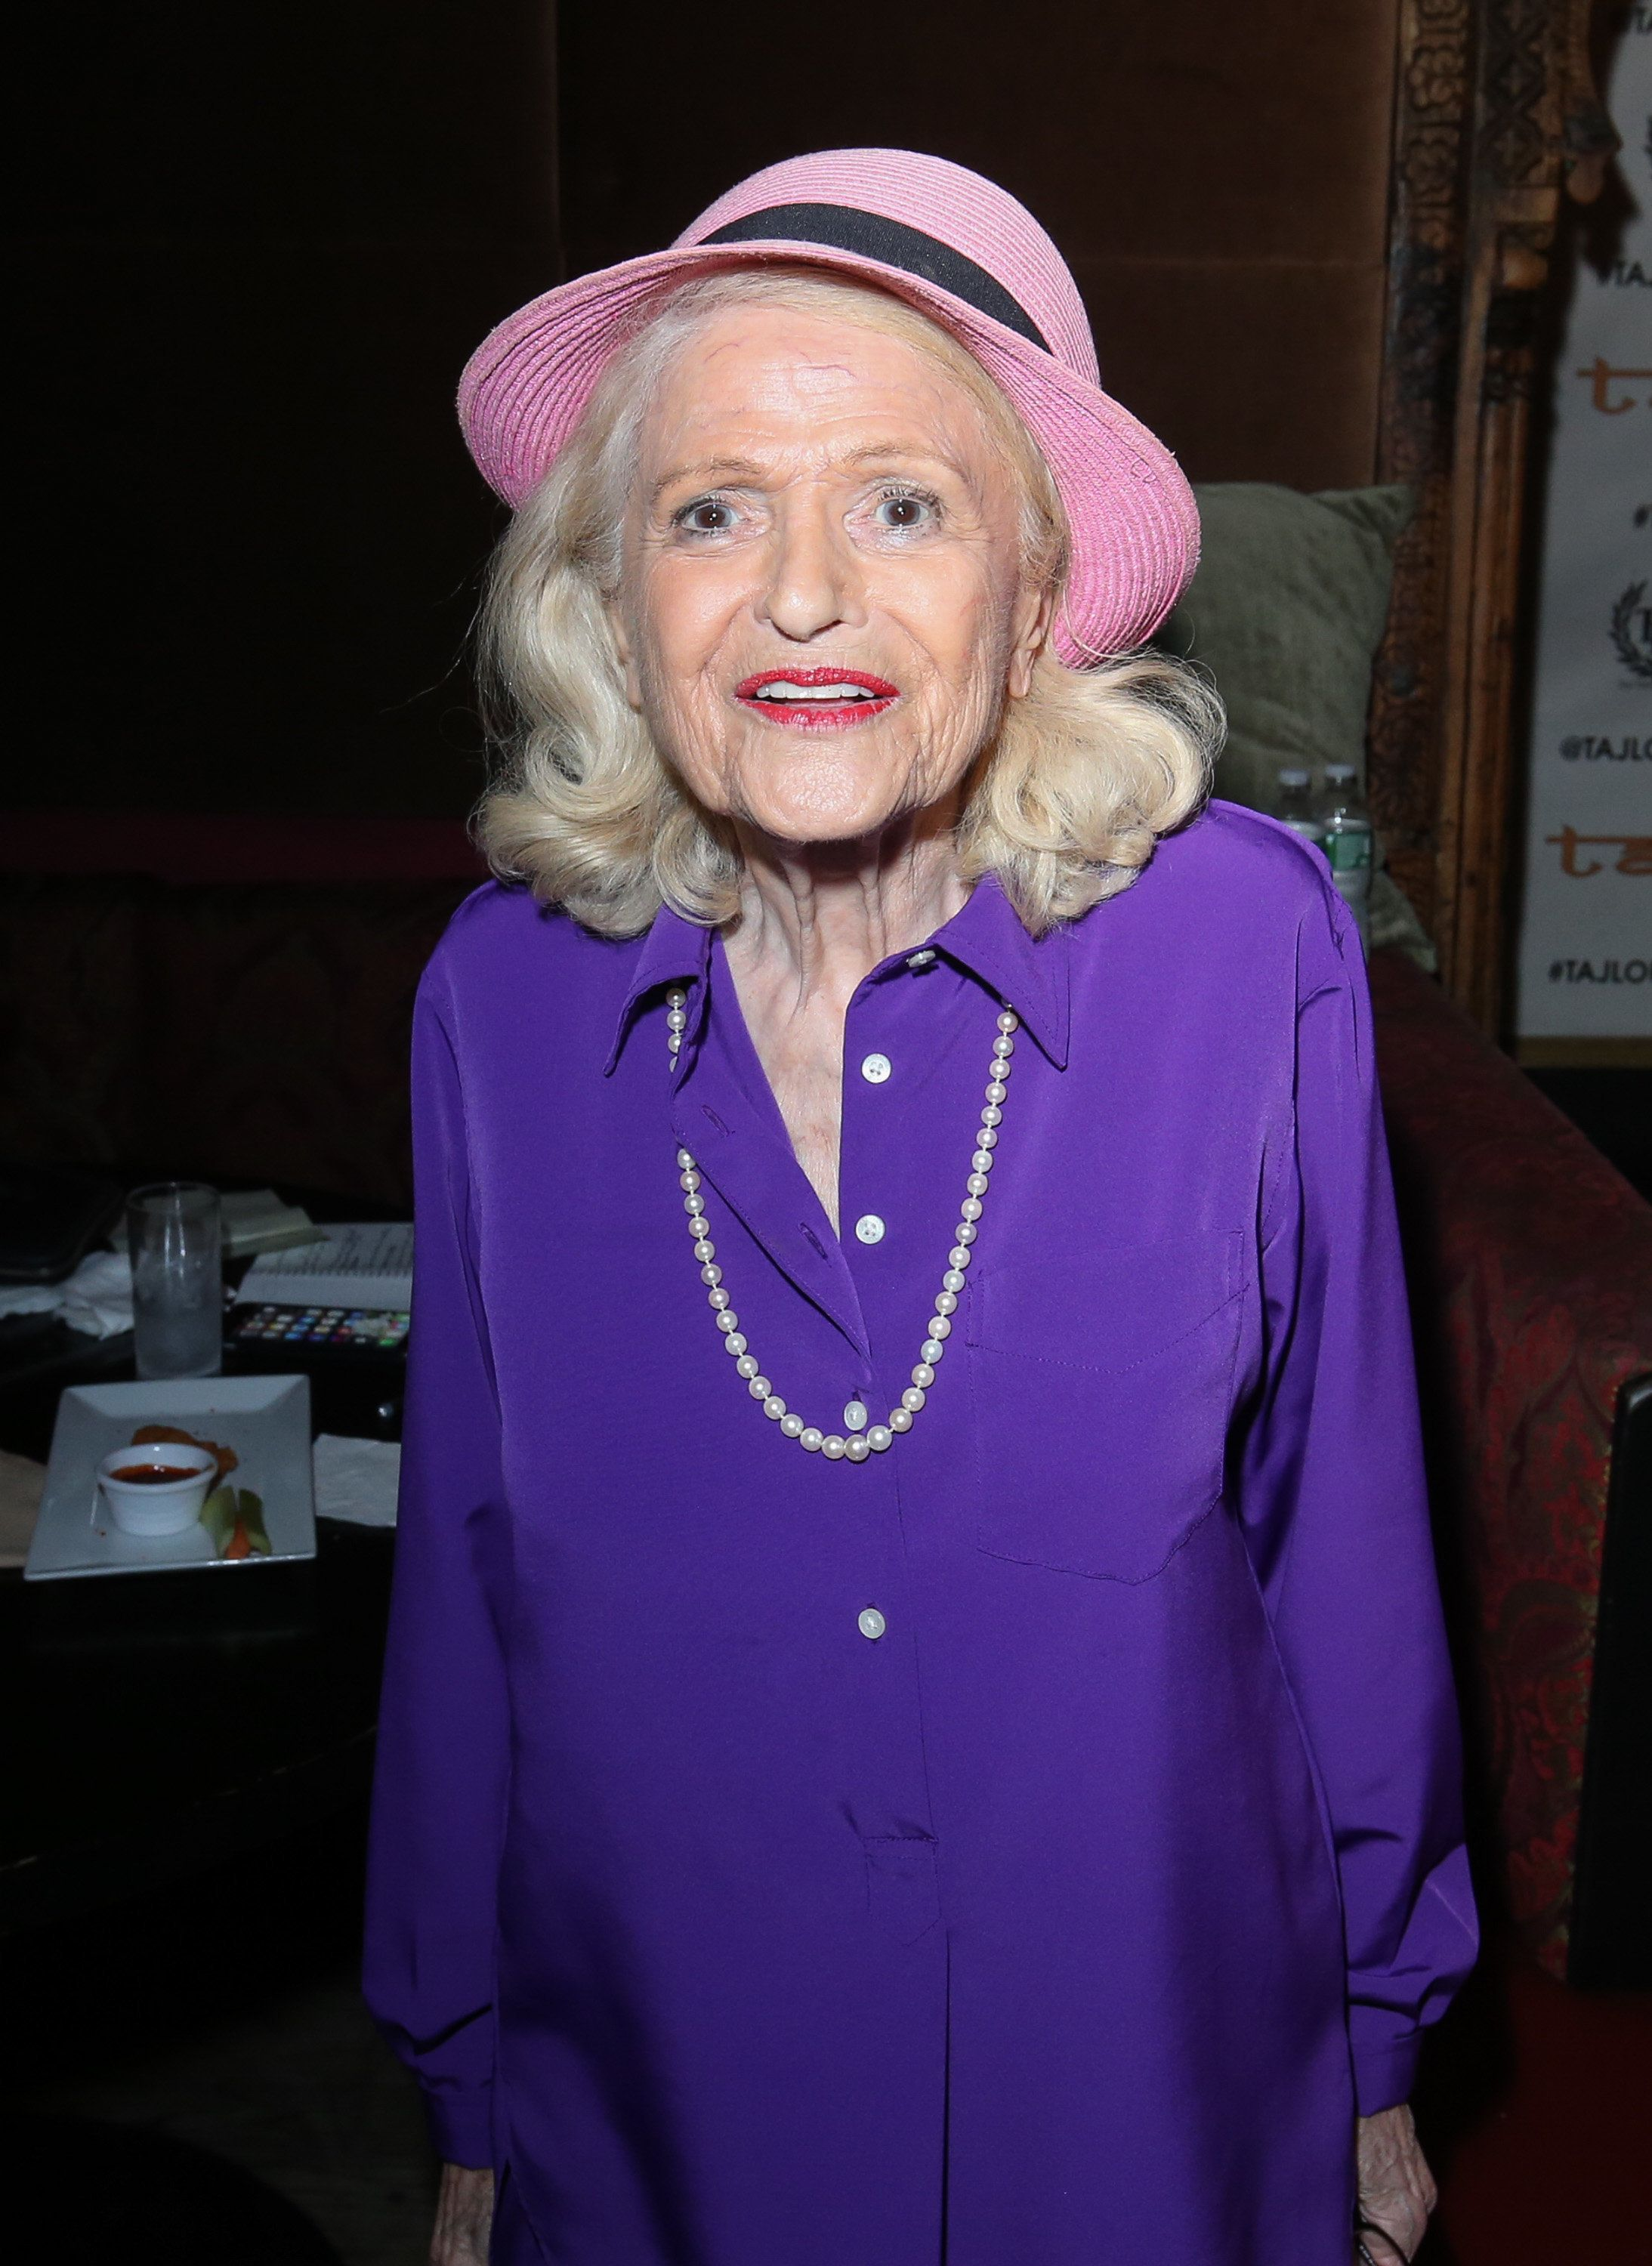 NEW YORK, NY - JUNE 23:  Edith 'Edie' Windsor attends the women-focused event: Moxie! at Taj II during NYC Pride 2017 on June 23, 2017 in New York City.  (Photo by Rob Kim/Getty Images)